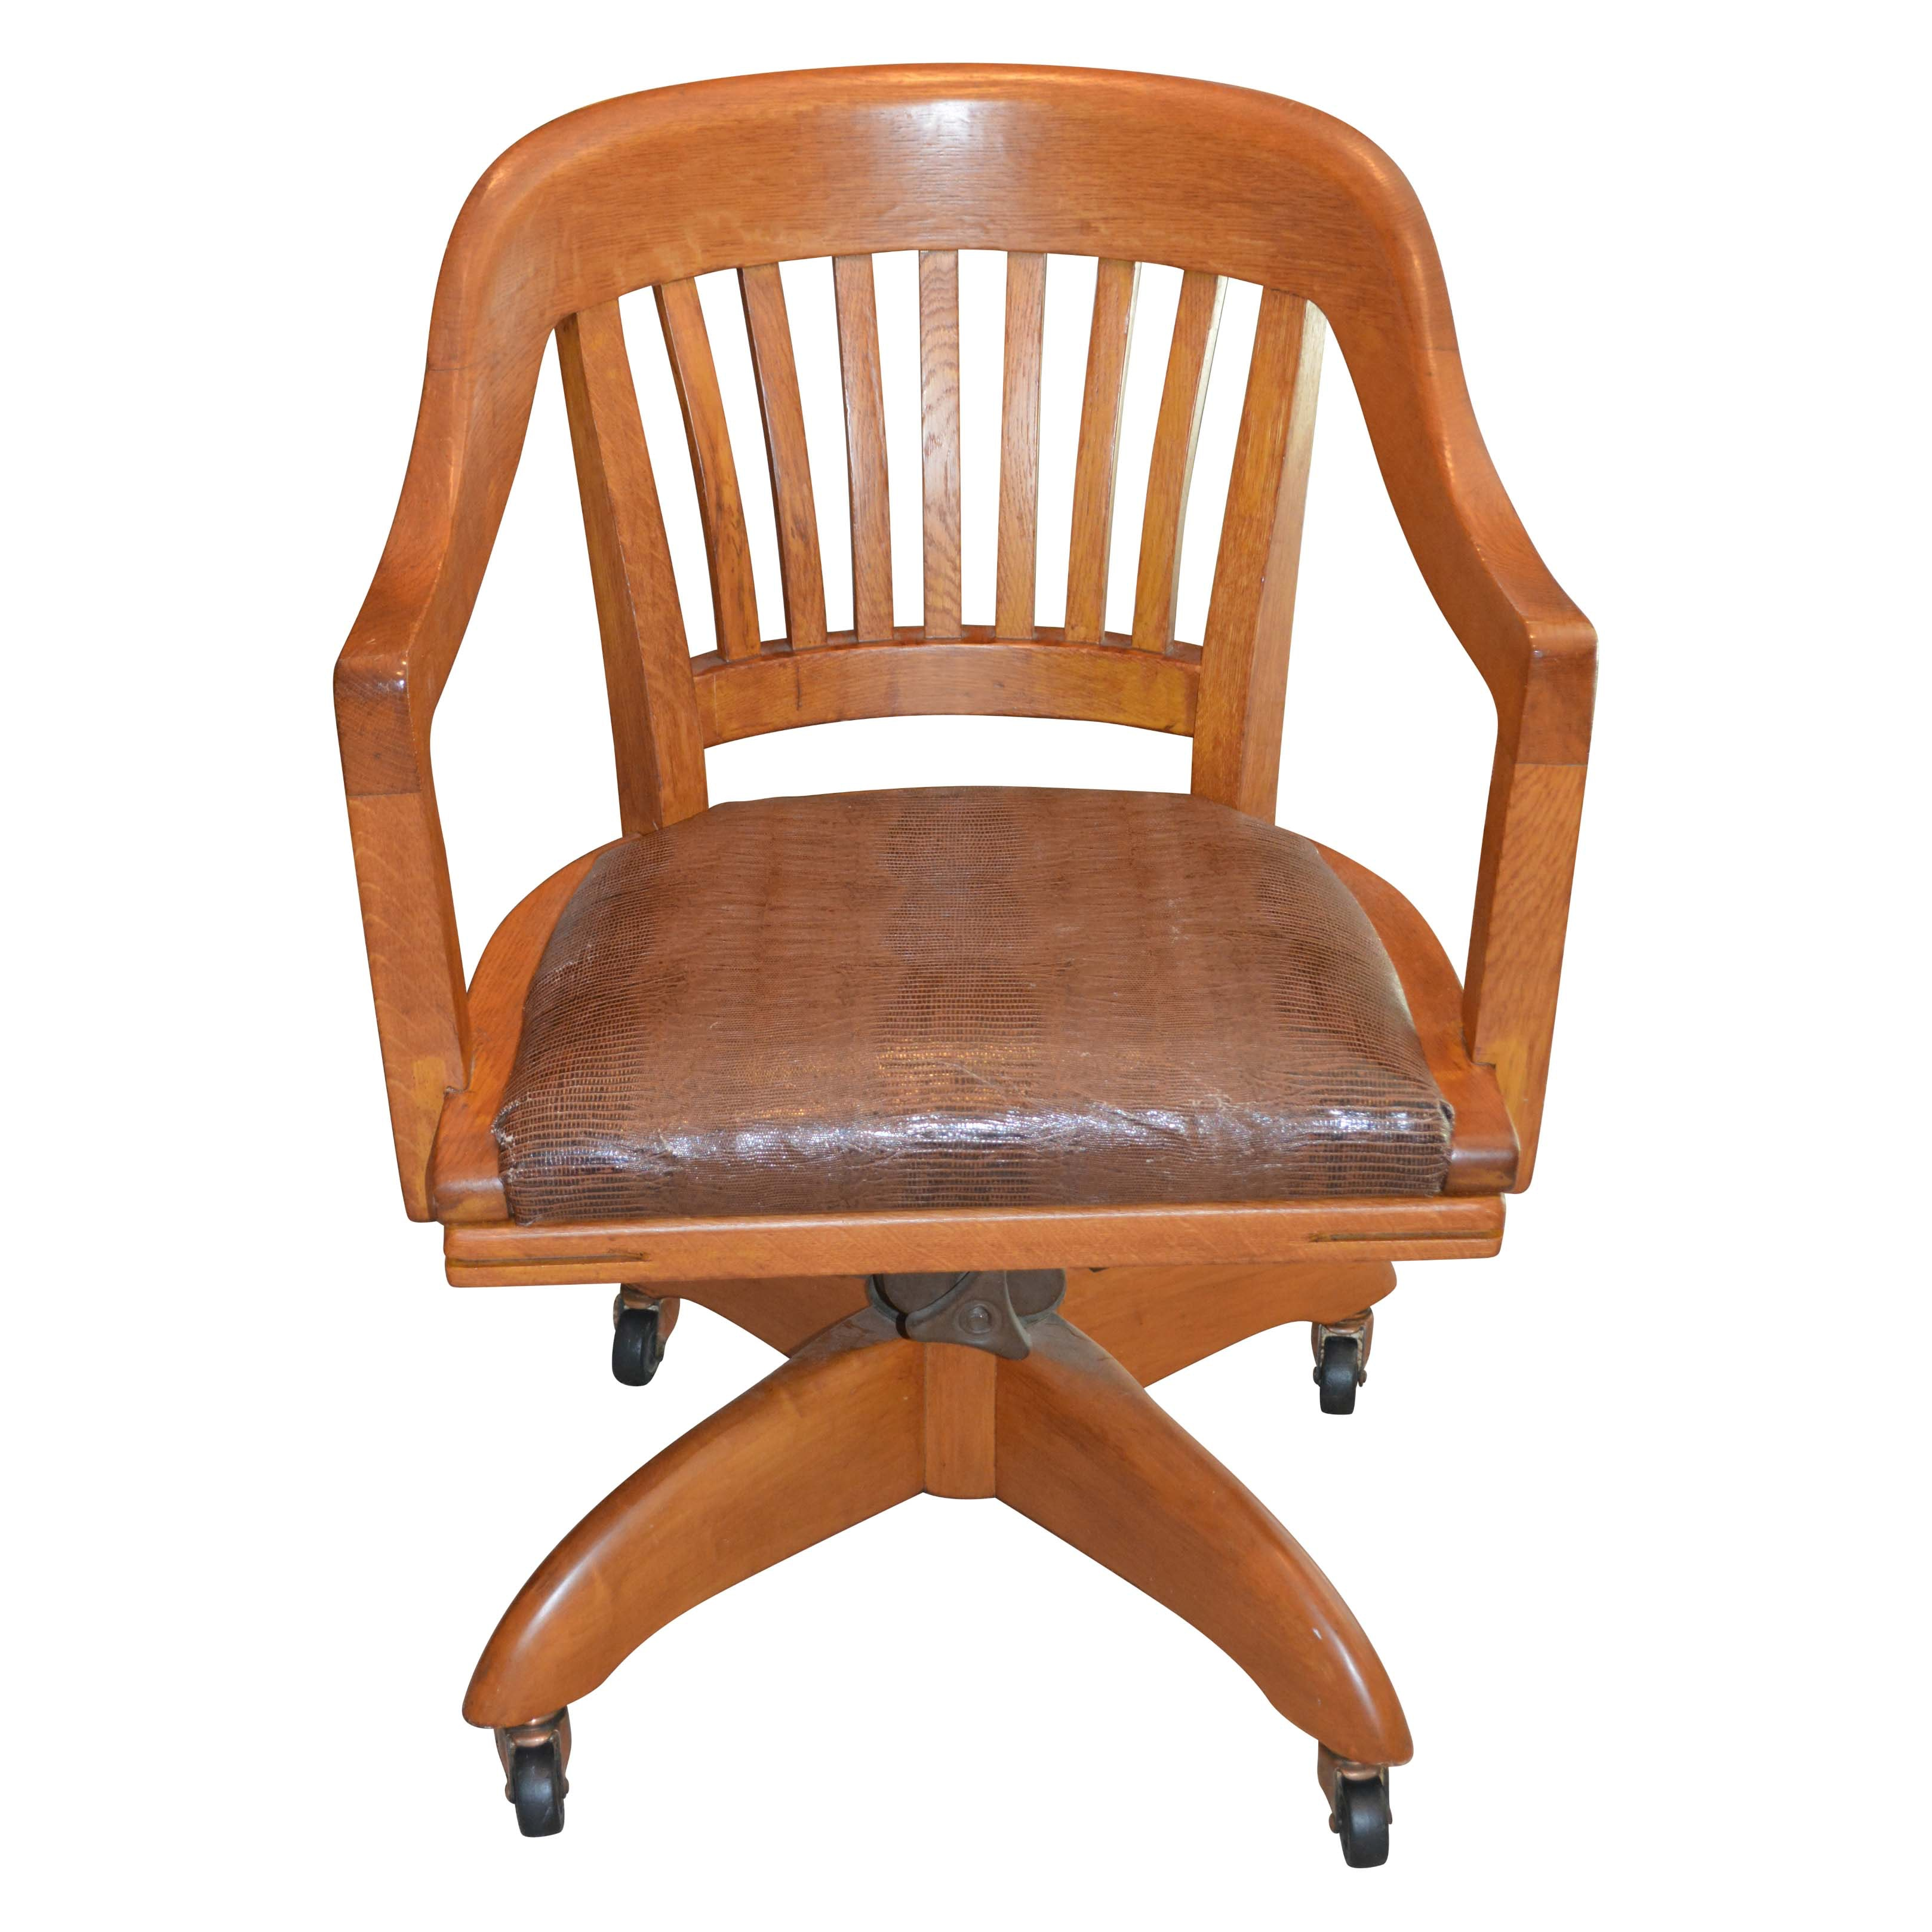 Vintage Oak Office Chair with Crocodile Print Seat